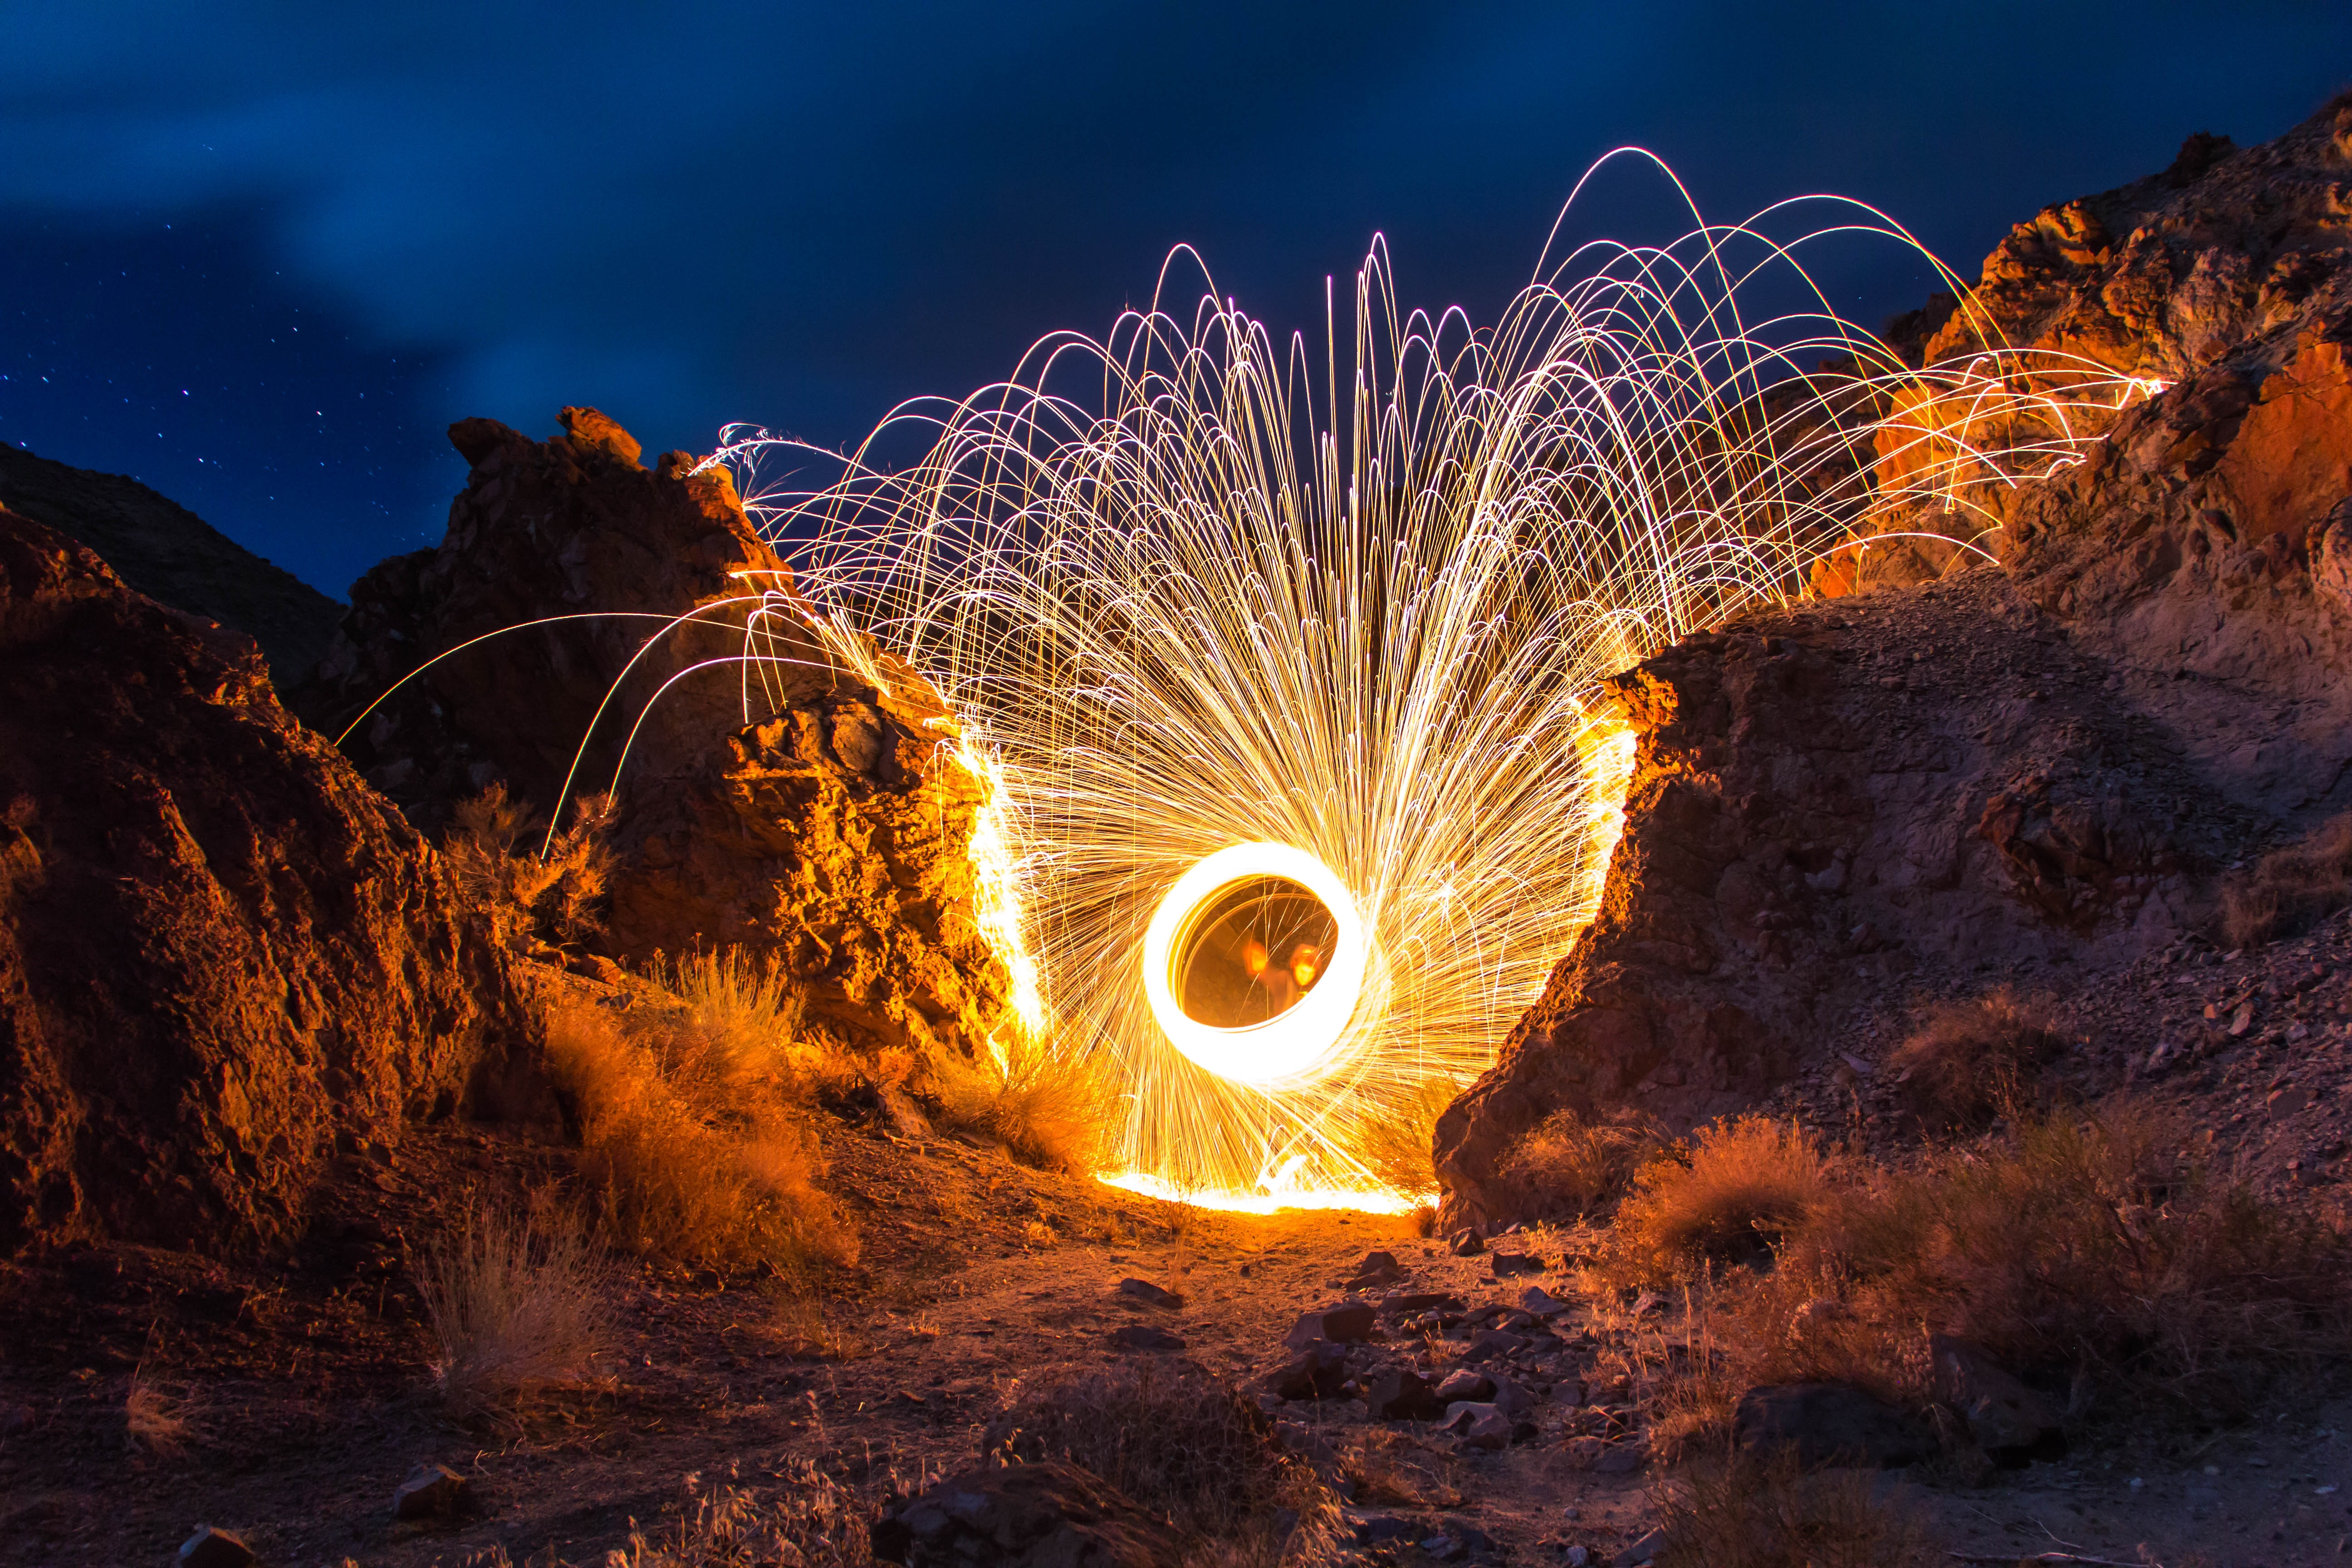 Bright spiral firework at night in mountains on dusty landscape